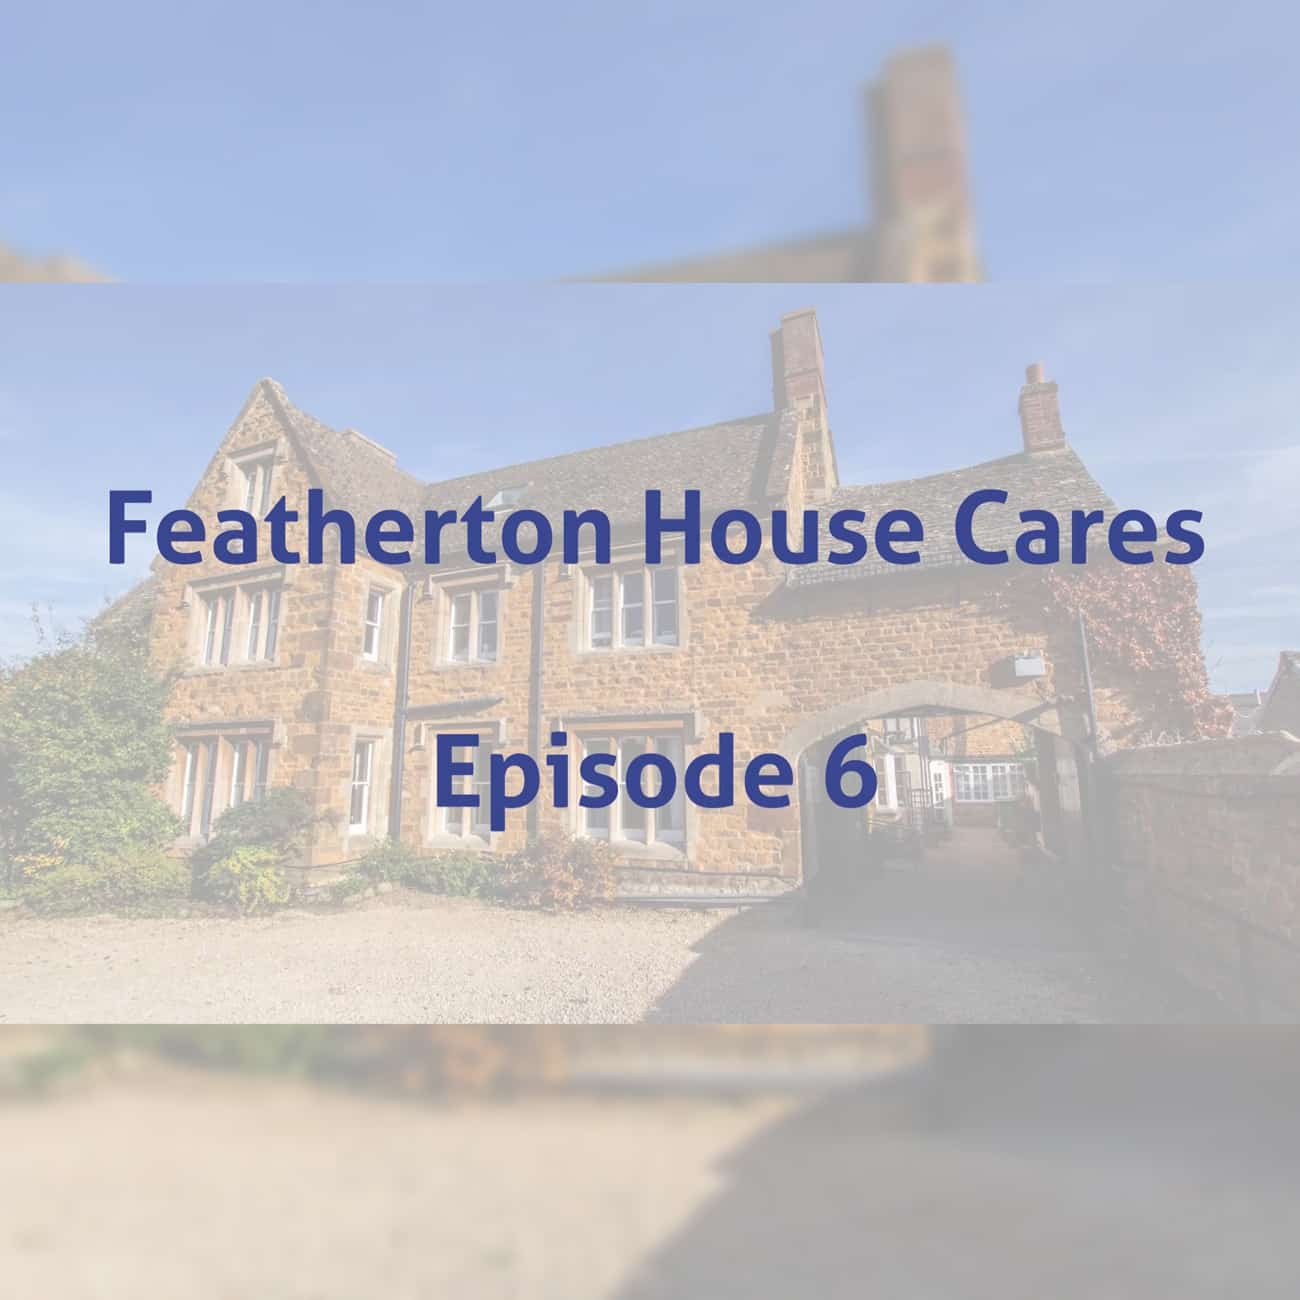 Featherton House Care Episode 6